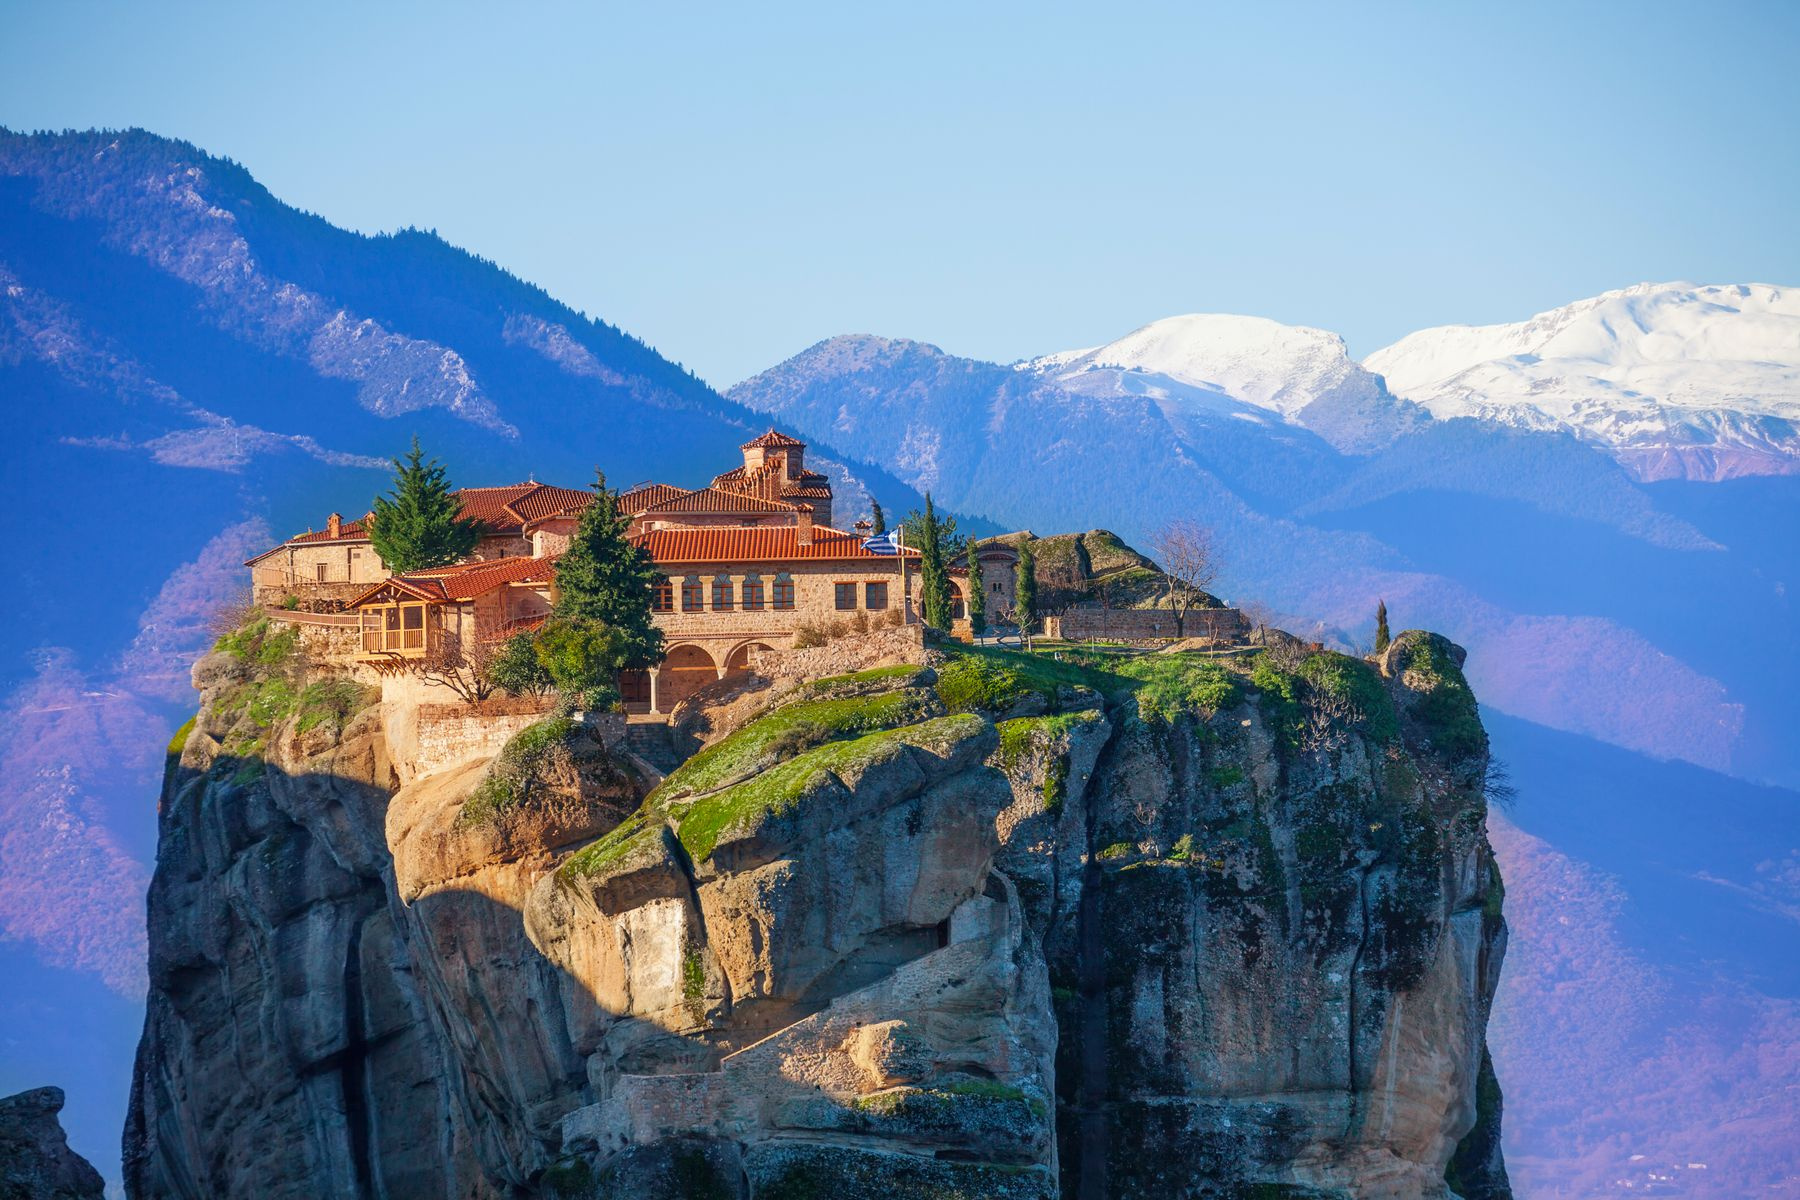 The hanging monasteries of Meteora in Greece are one of the lesser known world wonders